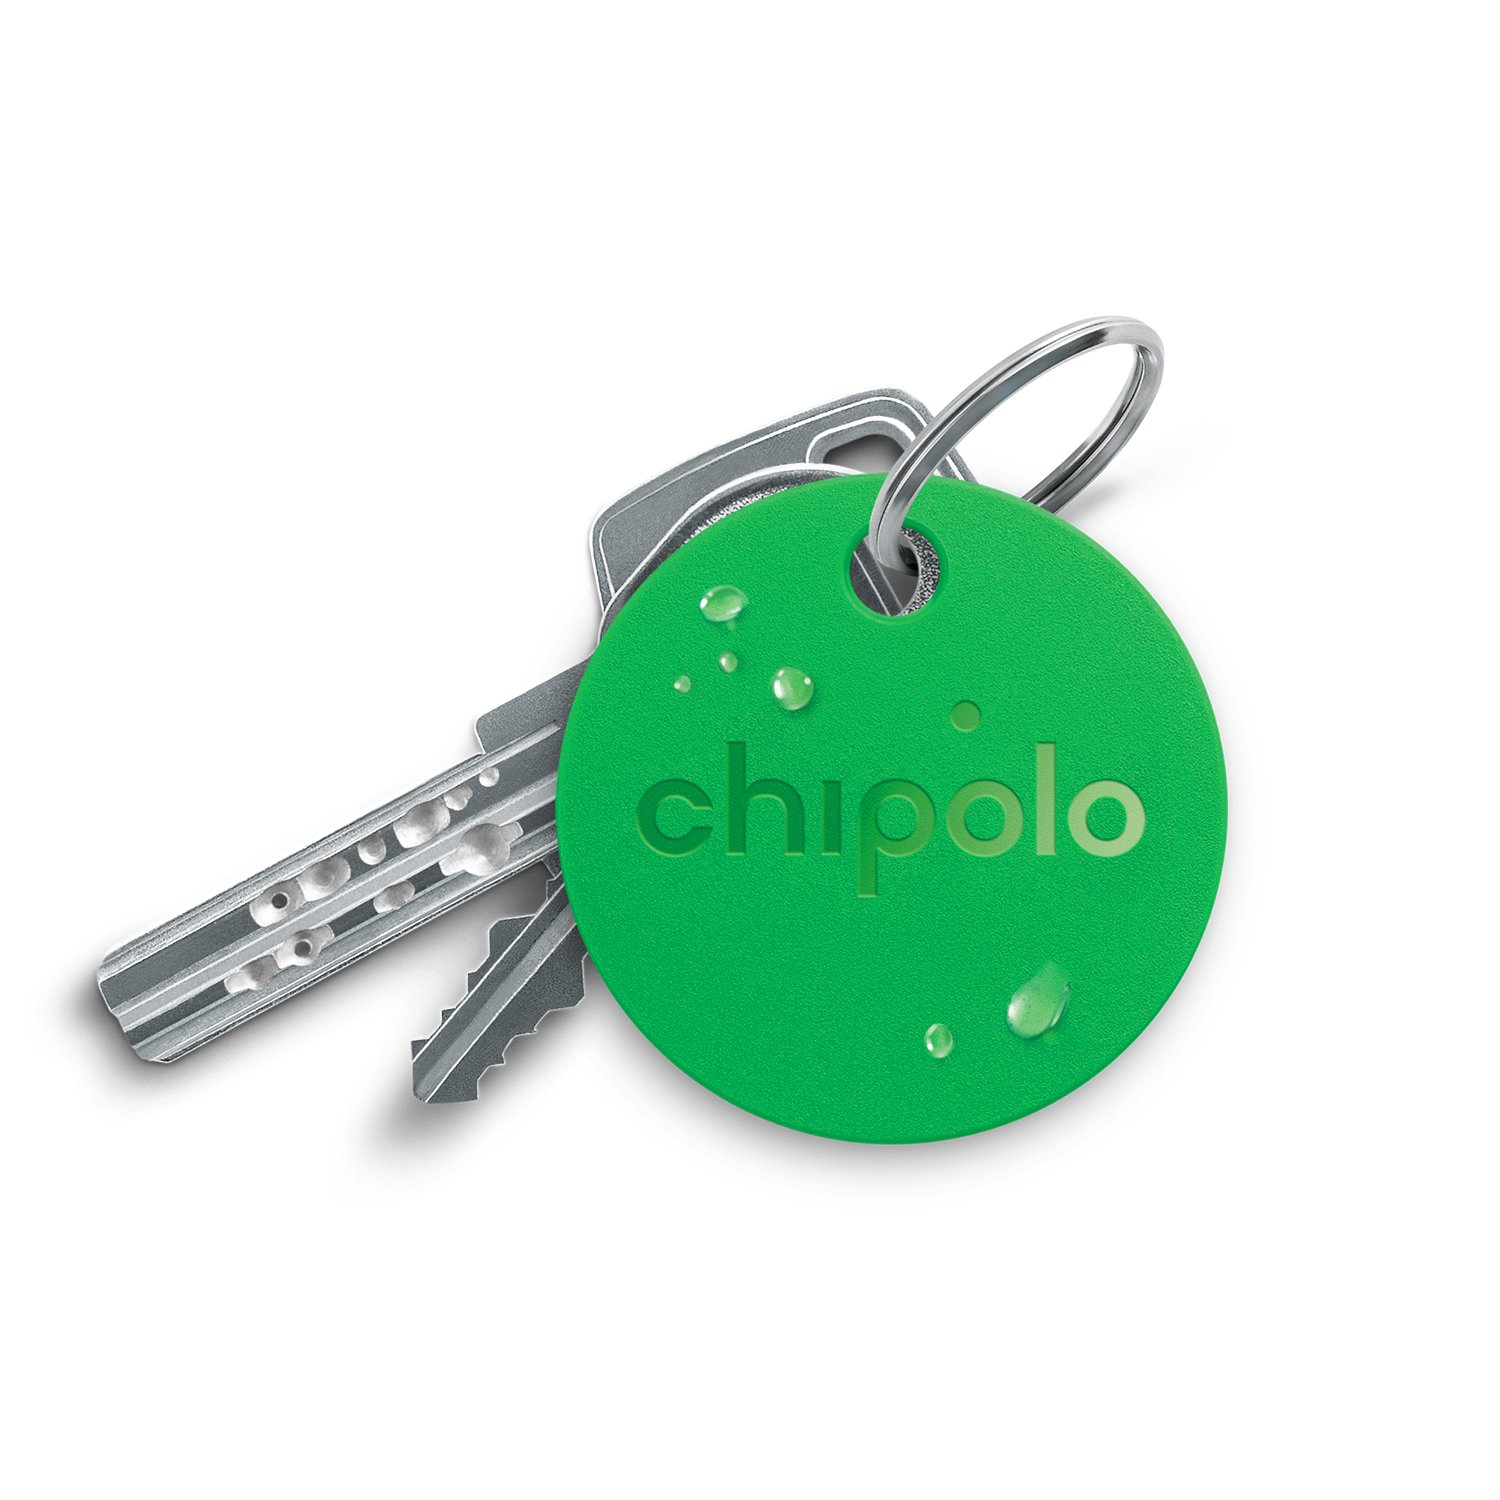 Chipolo Tracking Device / Finder